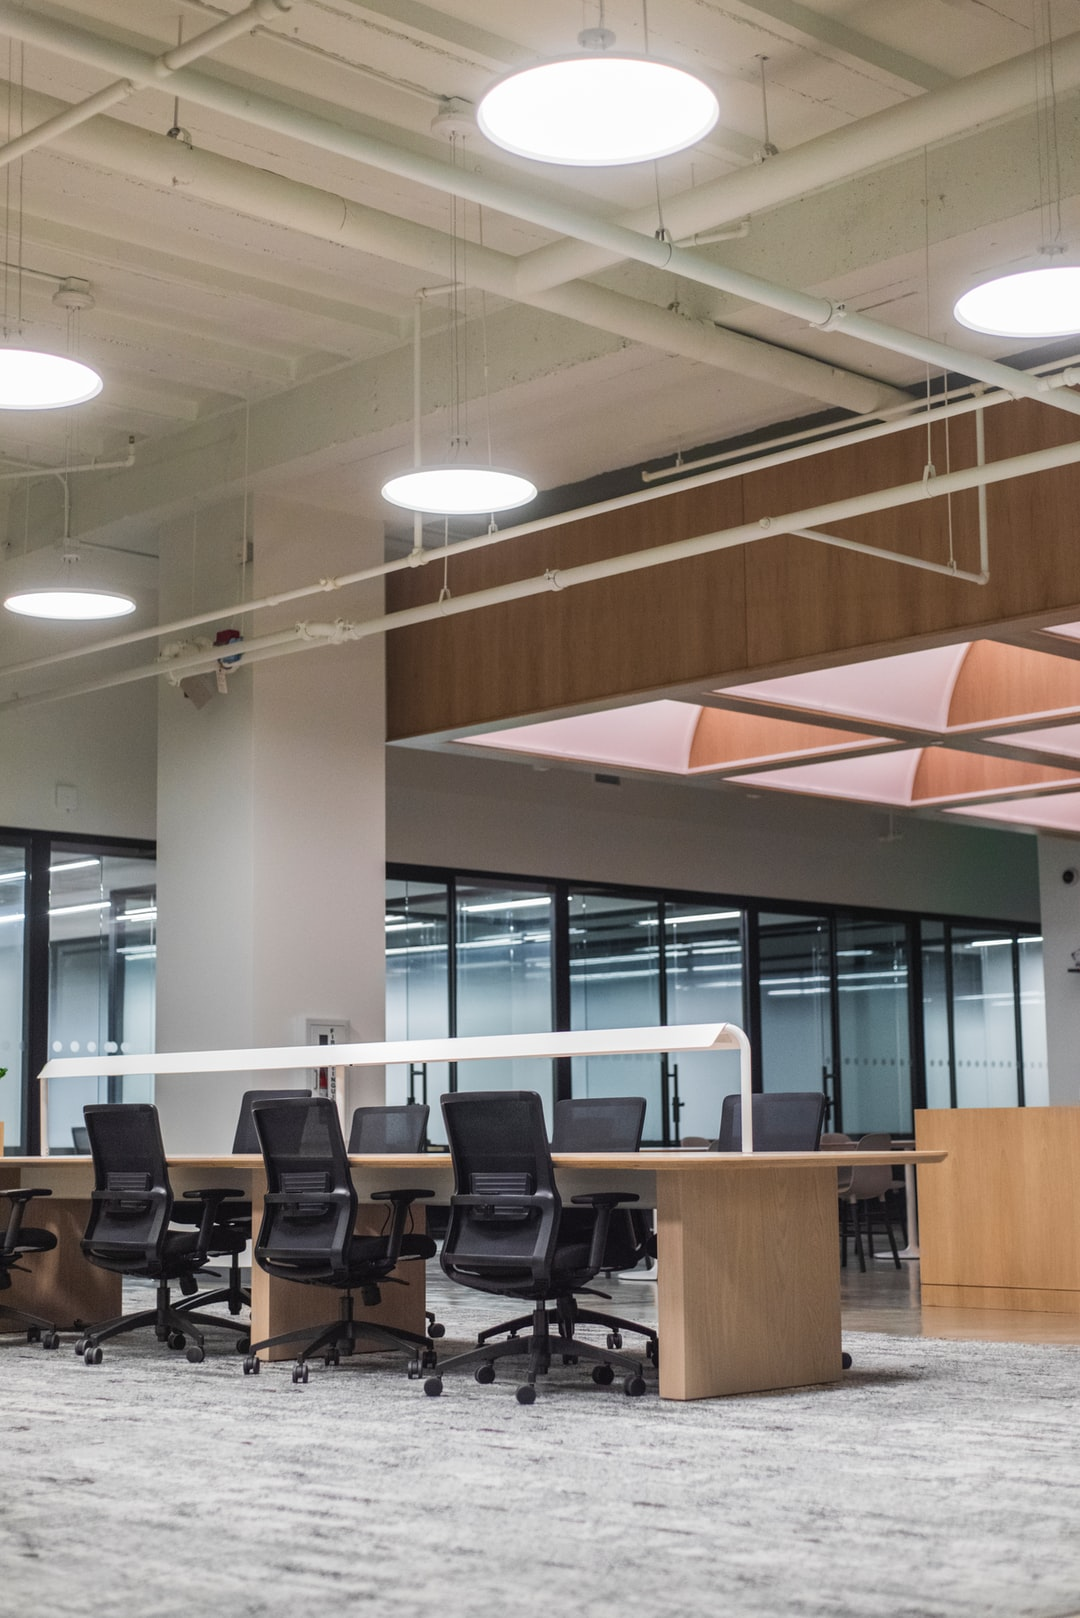 What to think about when moving offices